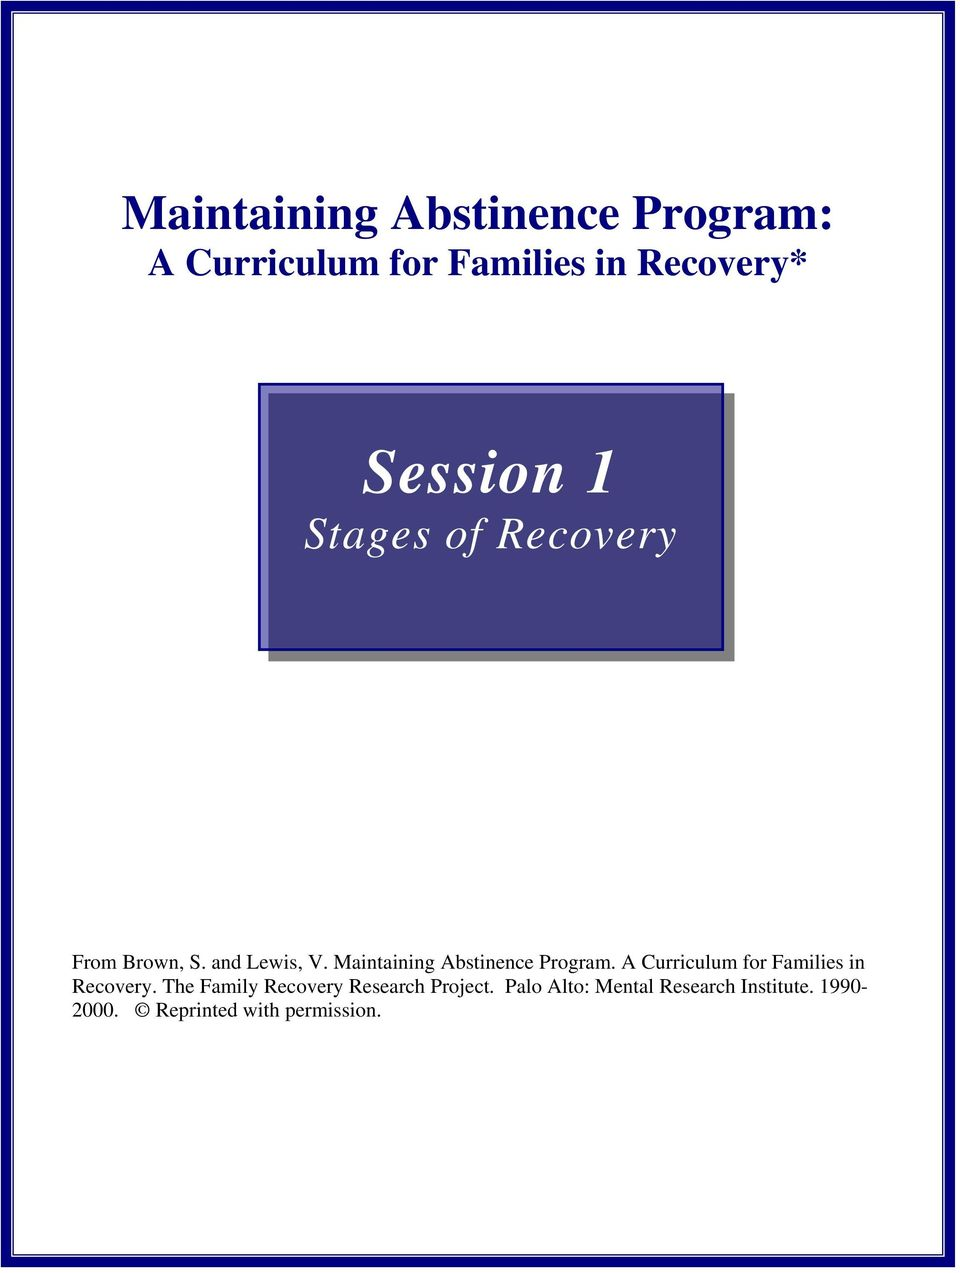 Maintaining Abstinence Program. A Curriculum for Families in Recovery.